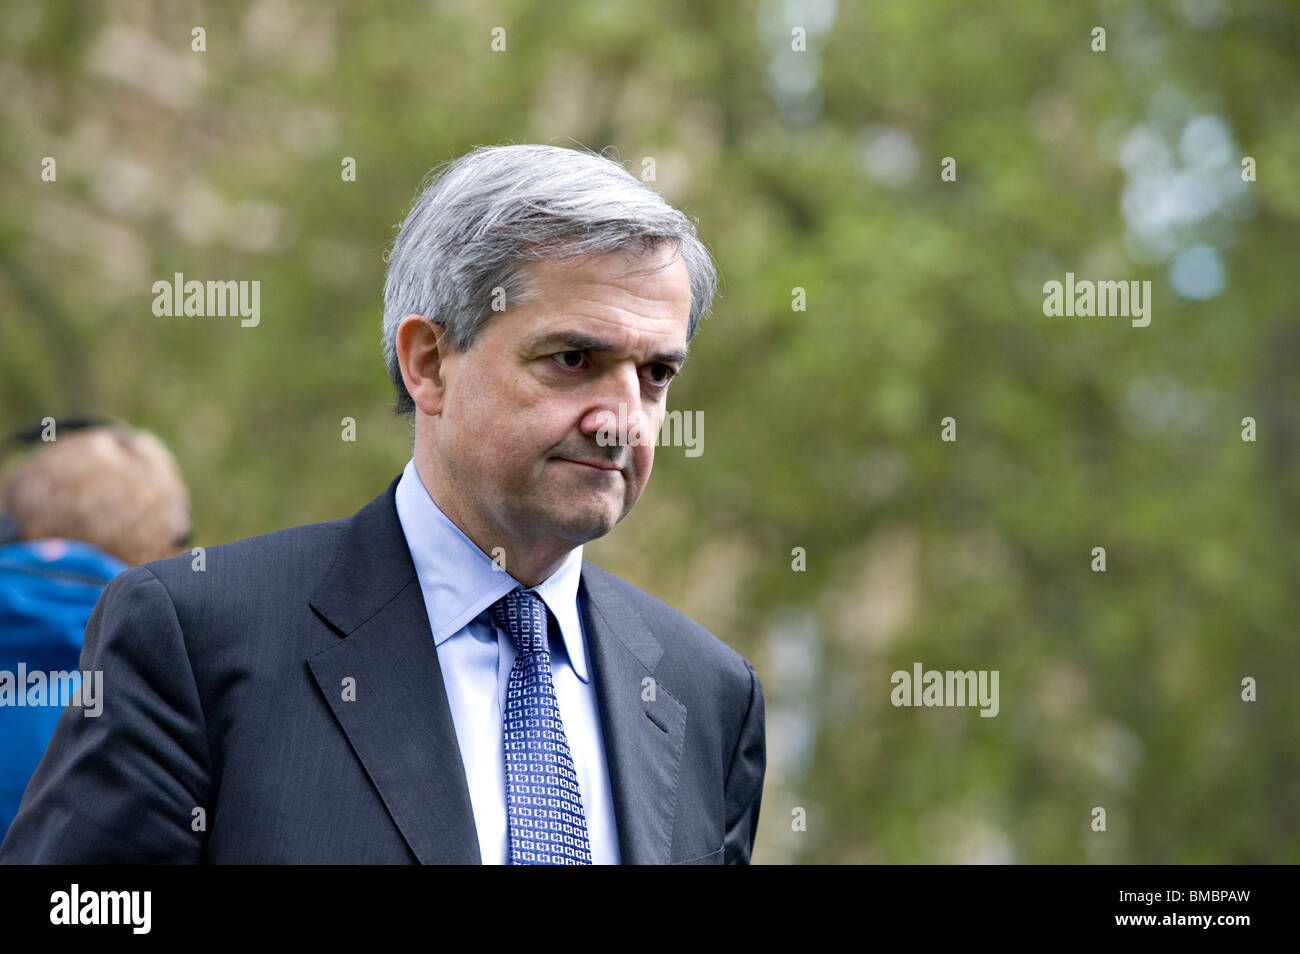 Chris Huhne Liberal Democrat Member of Parliament for Eastleigh, UK (2010) - Stock Image